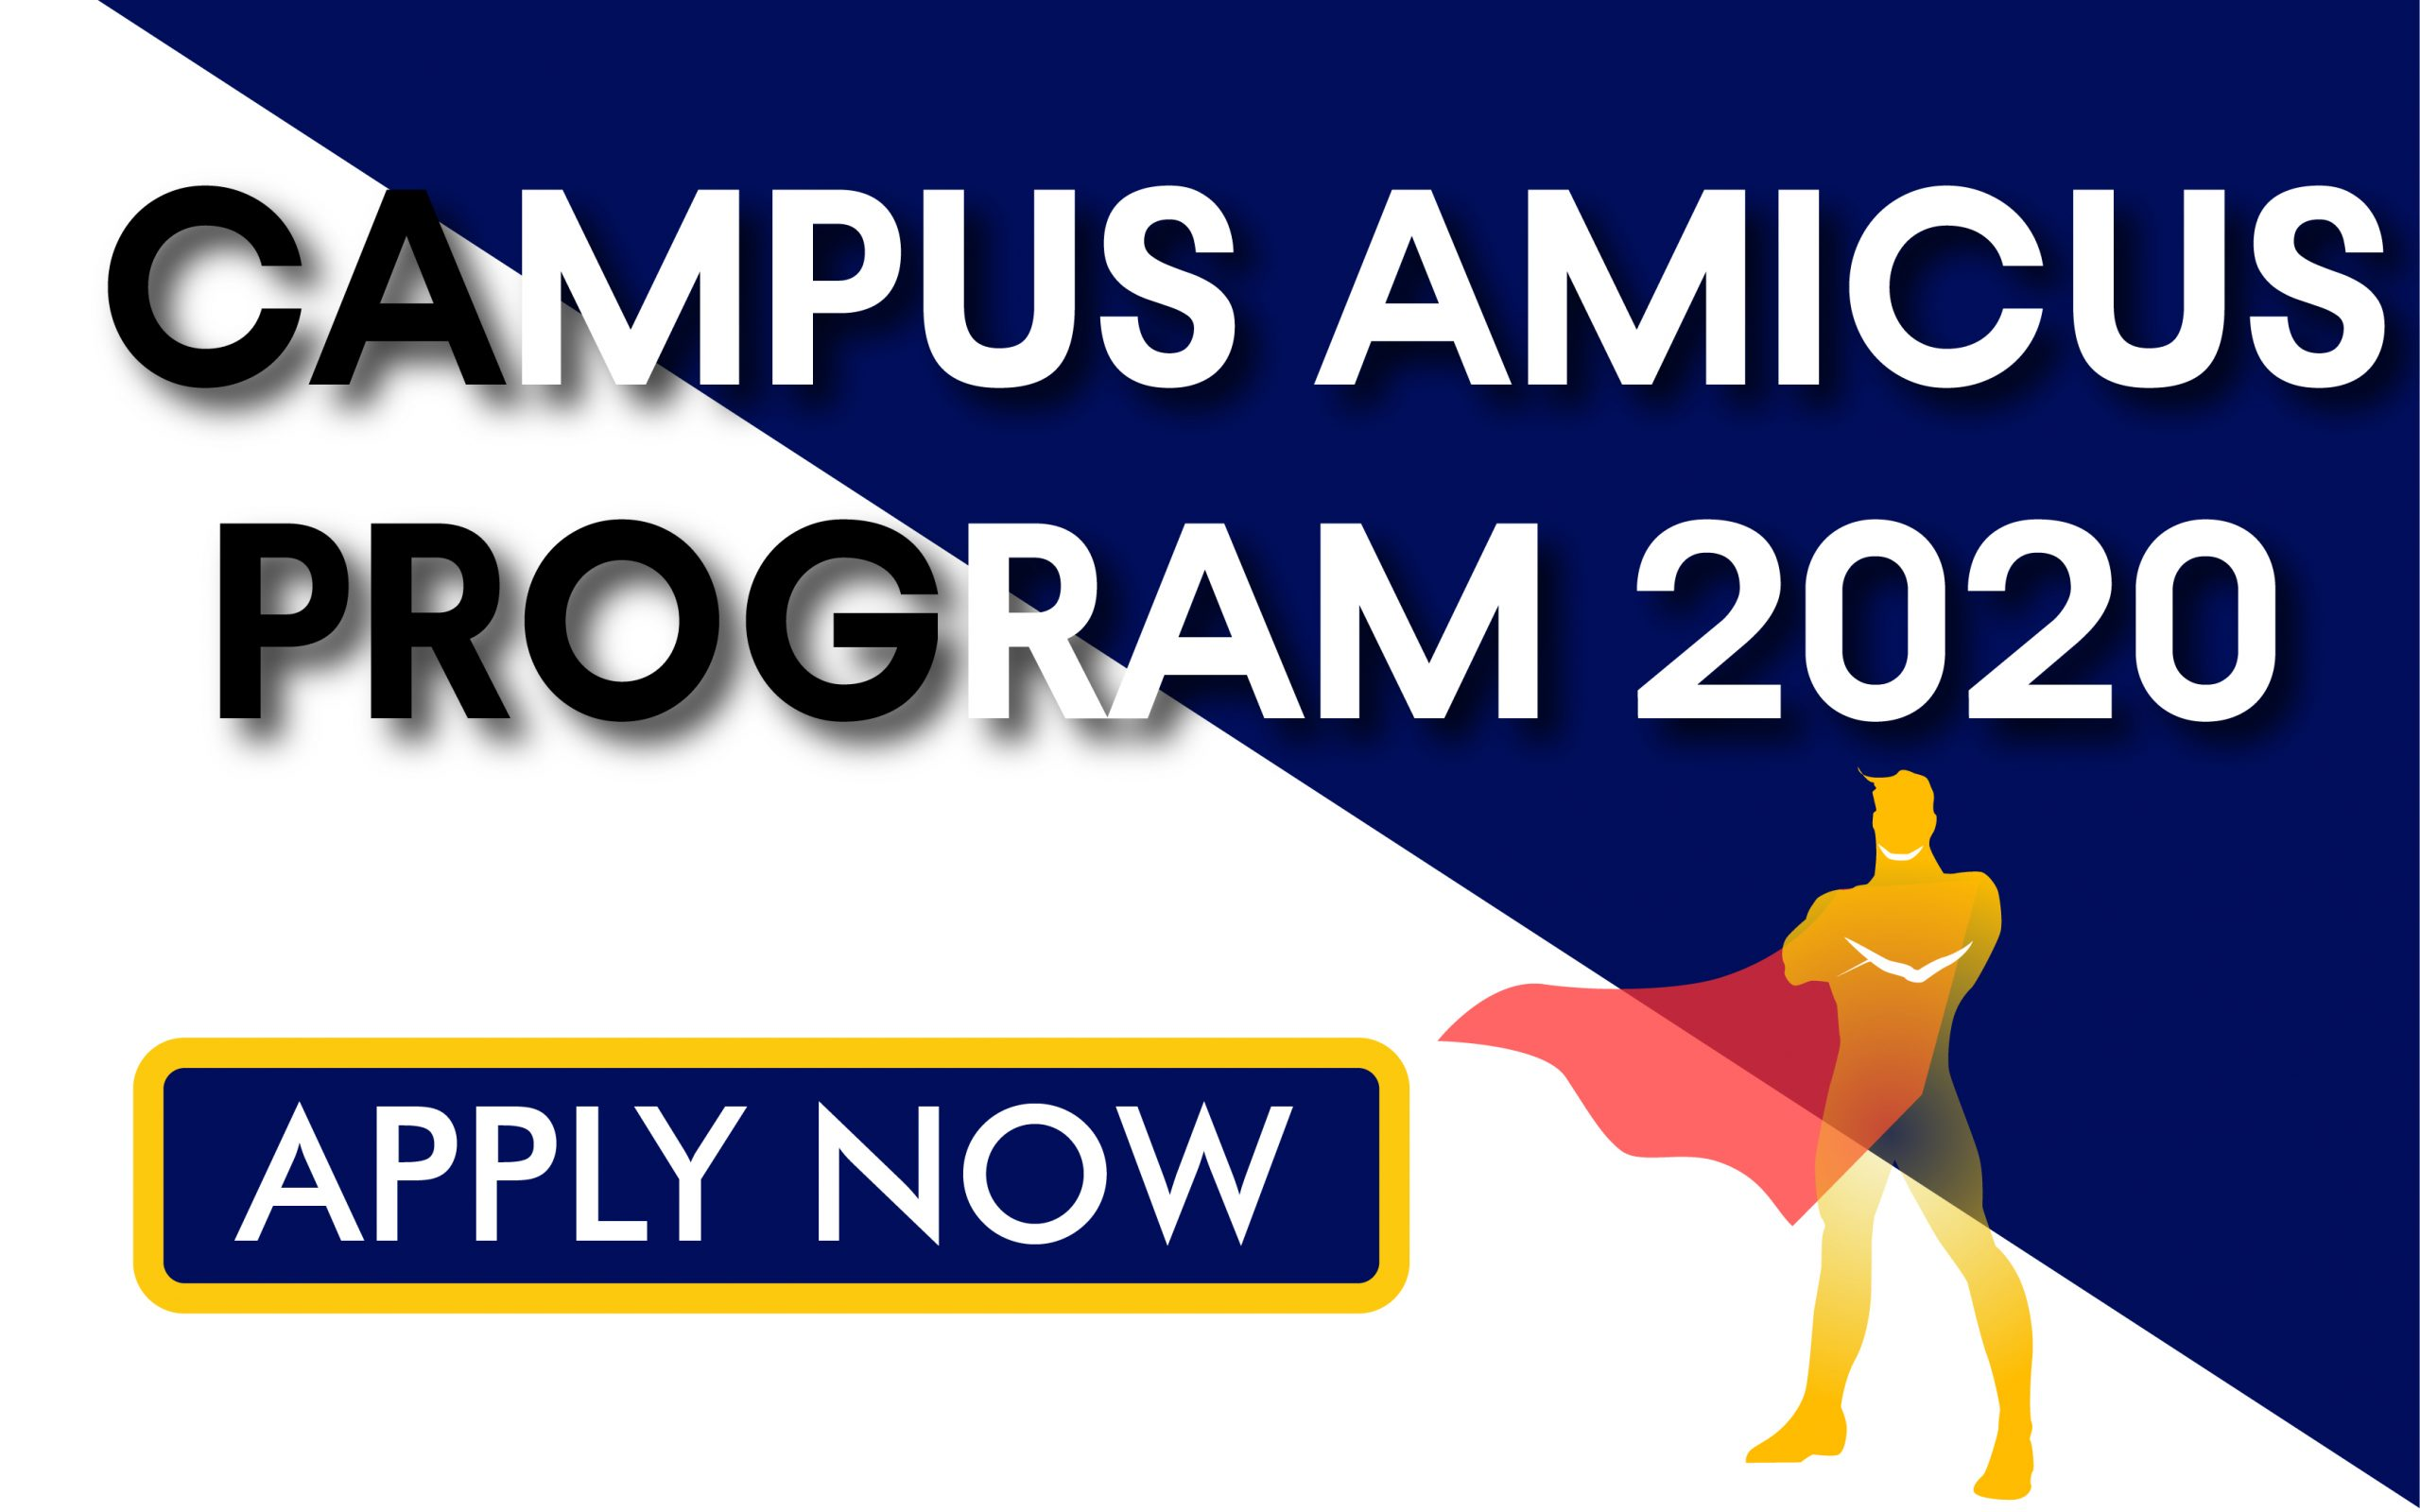 Campus Amicus Program 2020